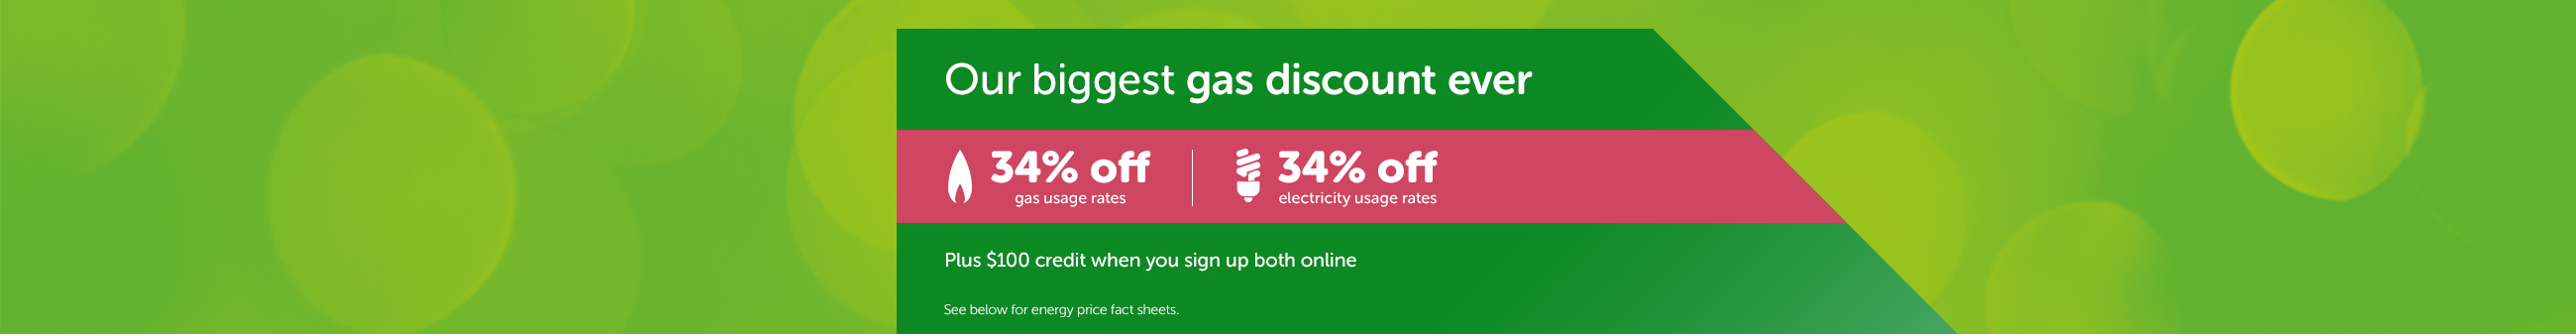 Our biggest gas discount ever - Plus $100 credit per account when you sign up both online